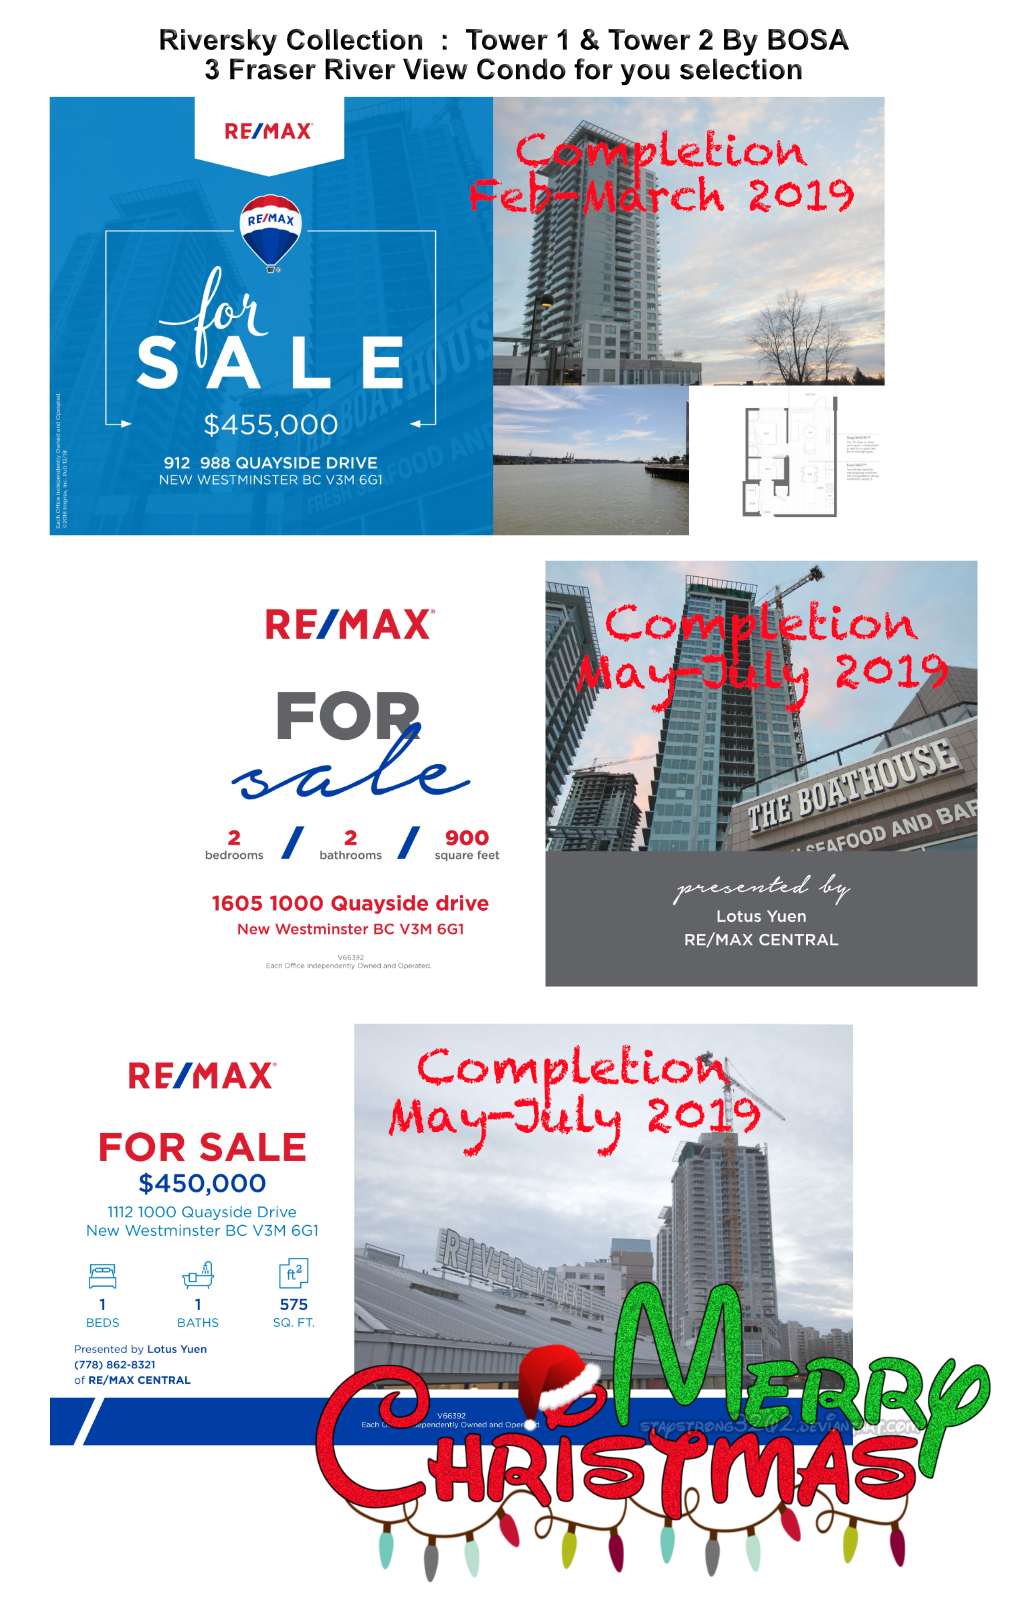 Riversky Assignments By Bosa For Sale  Findhomevalueca  Your  Riversky Assignments By Bosa For Sale